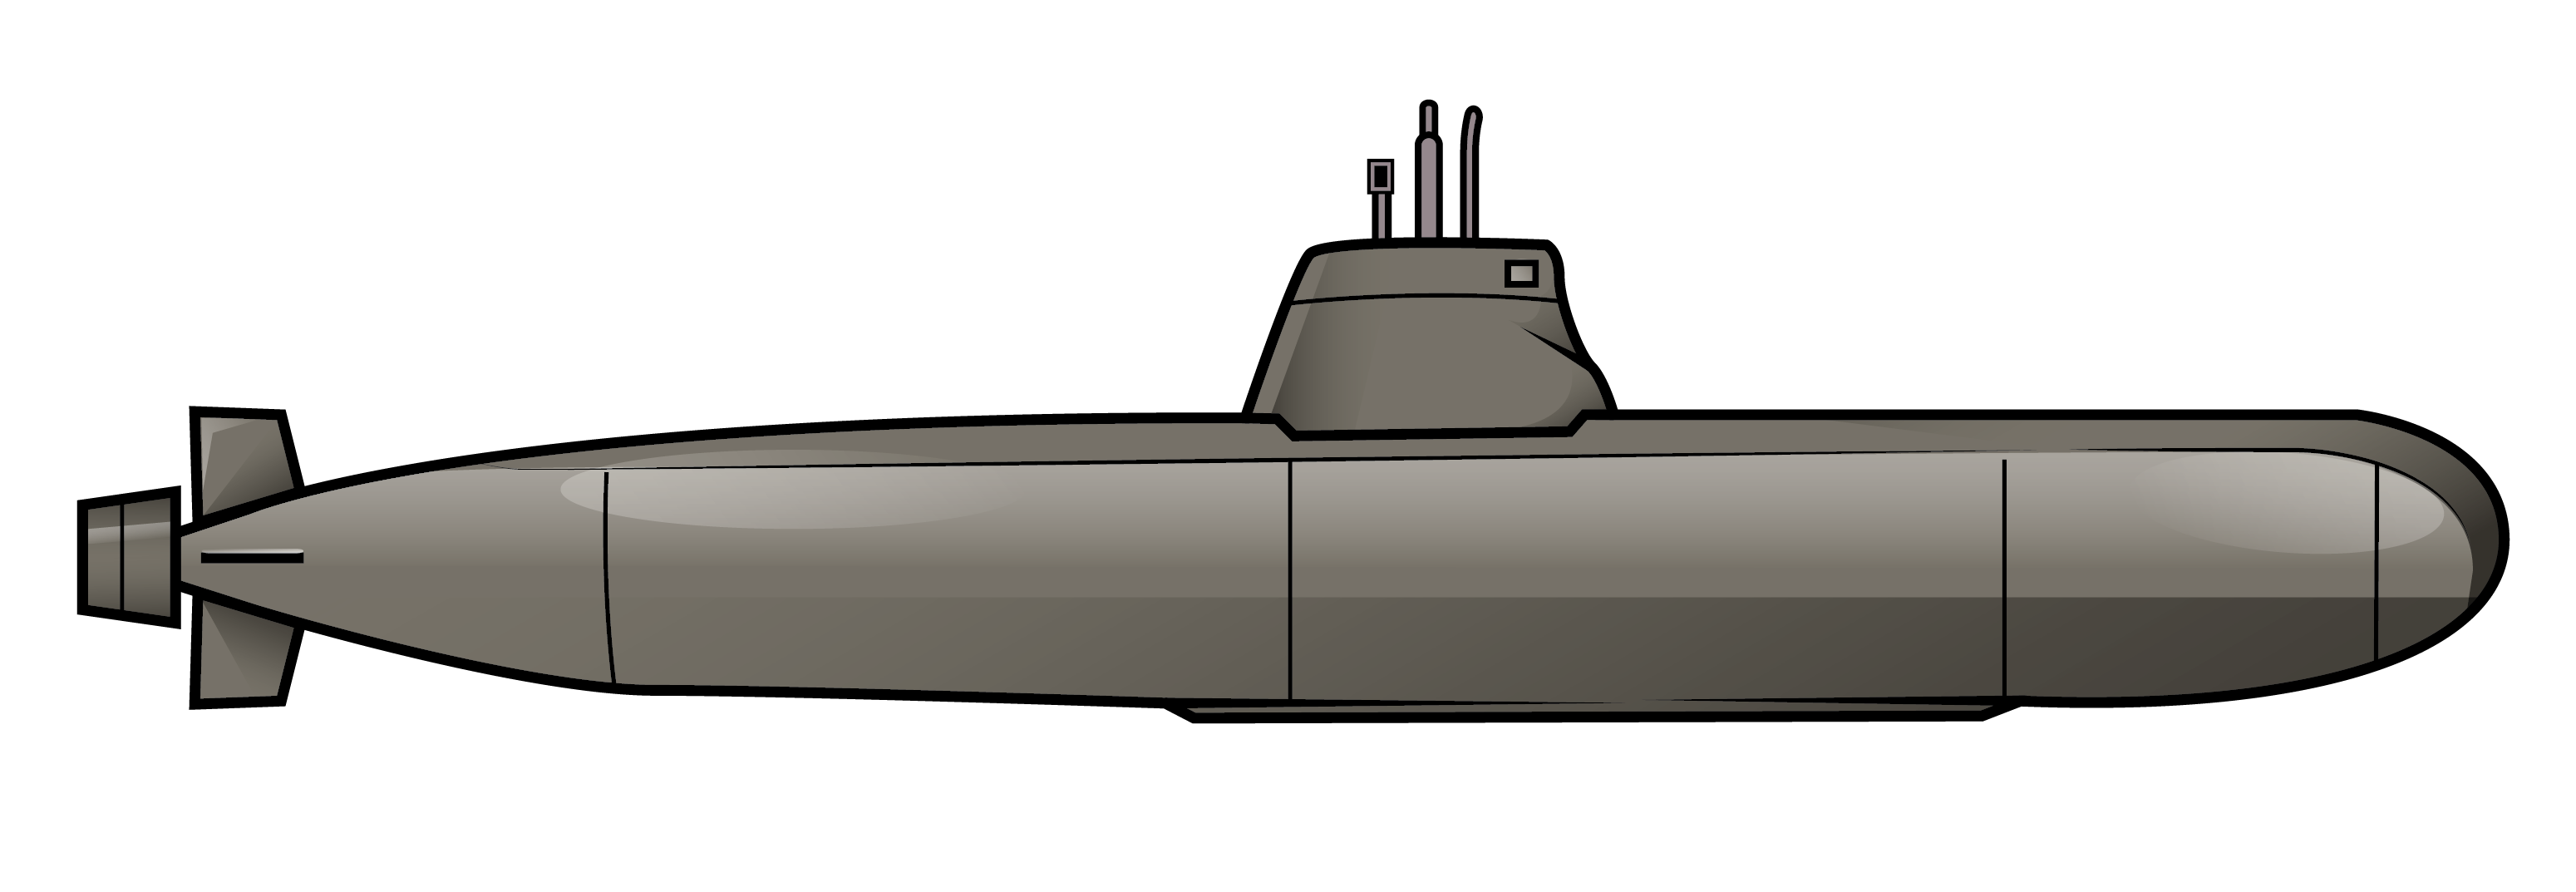 At getdrawings com free. Submarine clipart